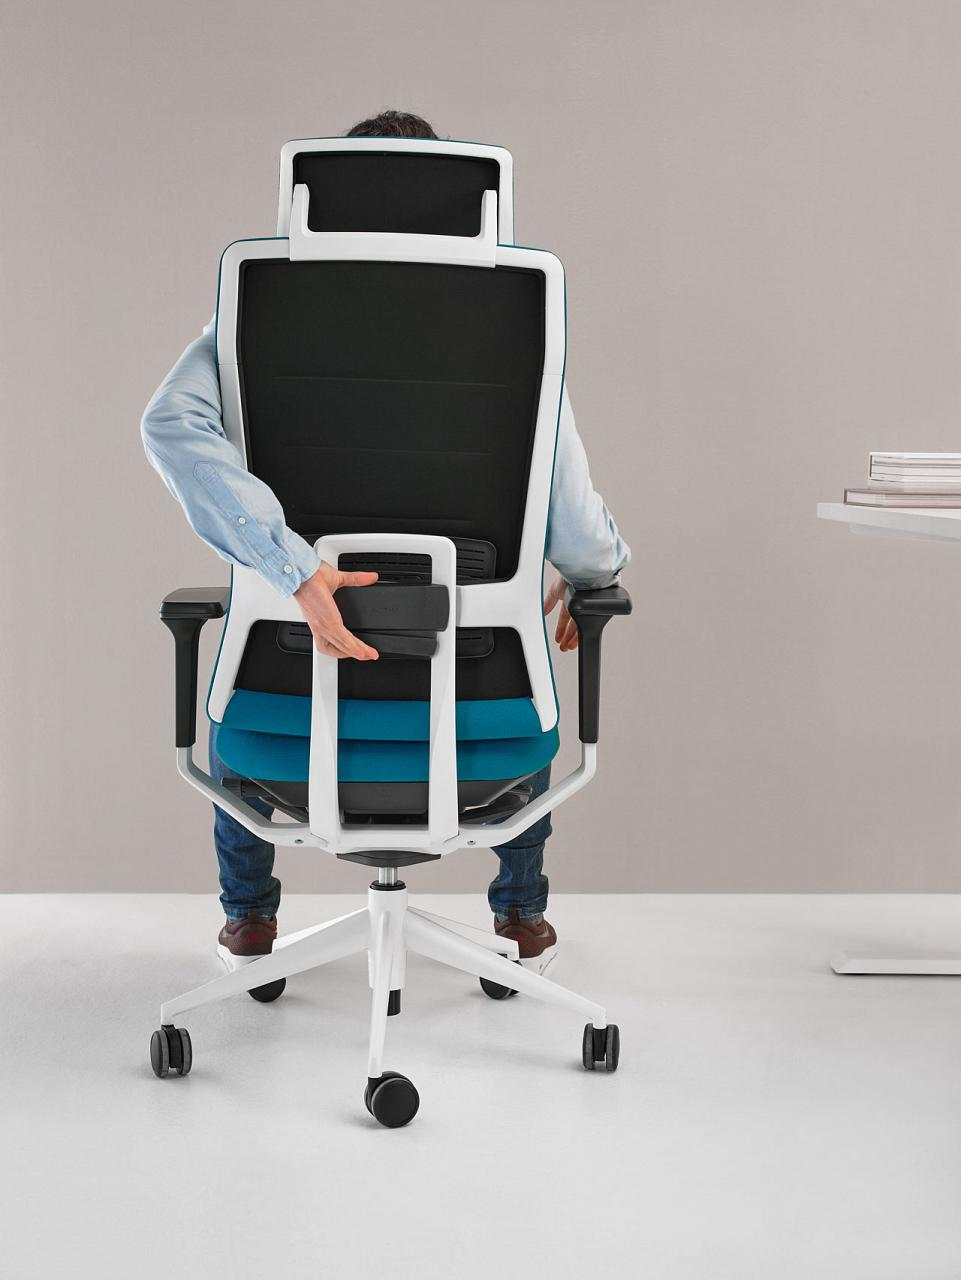 Flex Chairs Tnk Flex Ergonomic Office Chair For Intensive Use